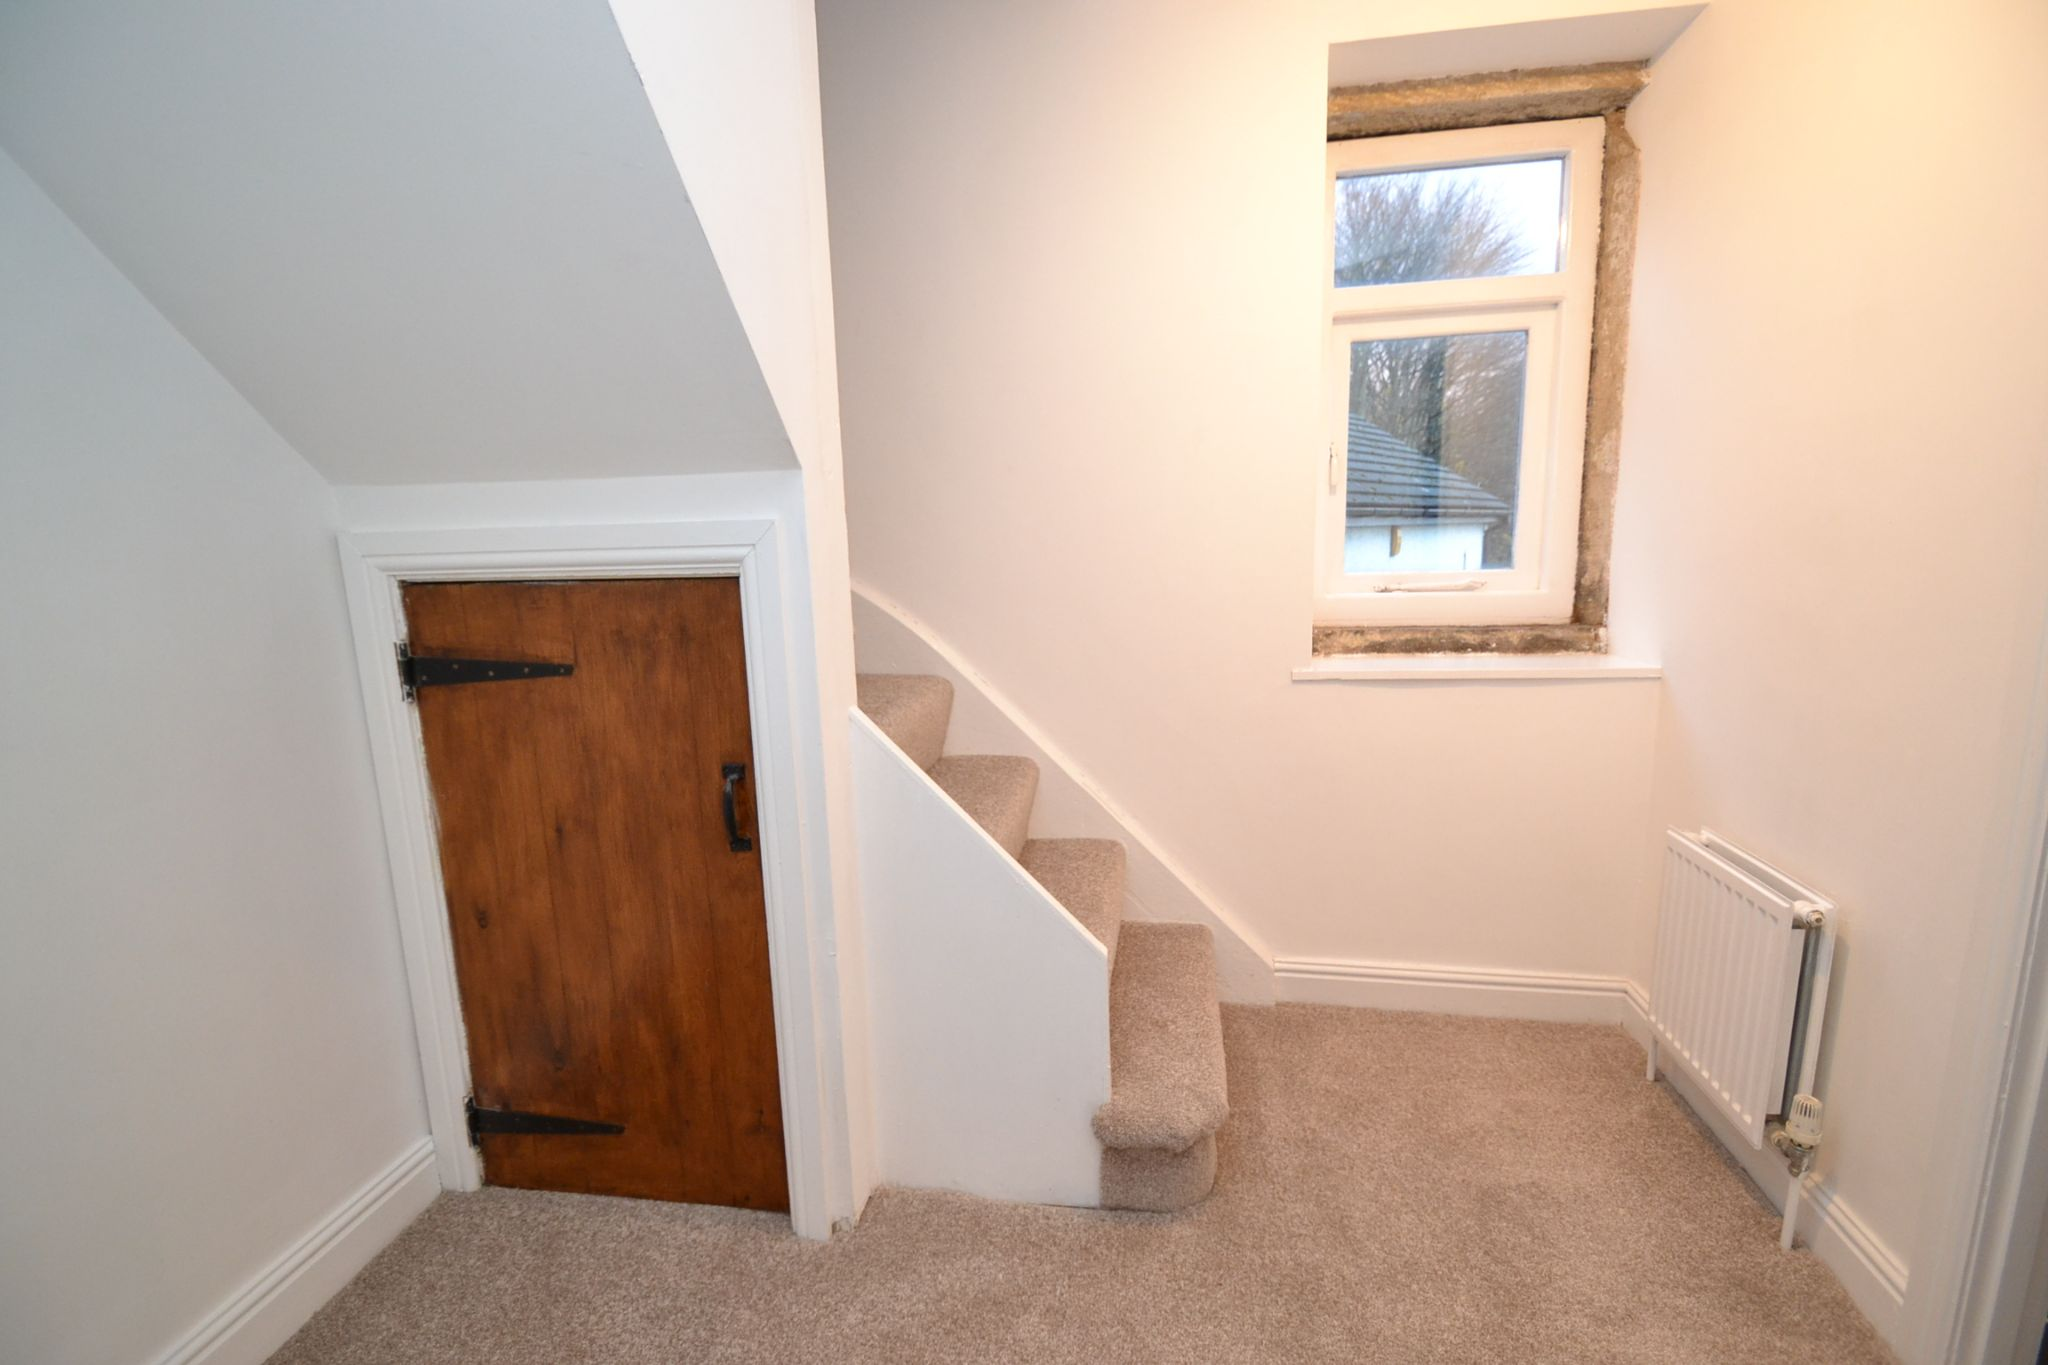 3 Bedroom End Terraced House For Sale - Photograph 5